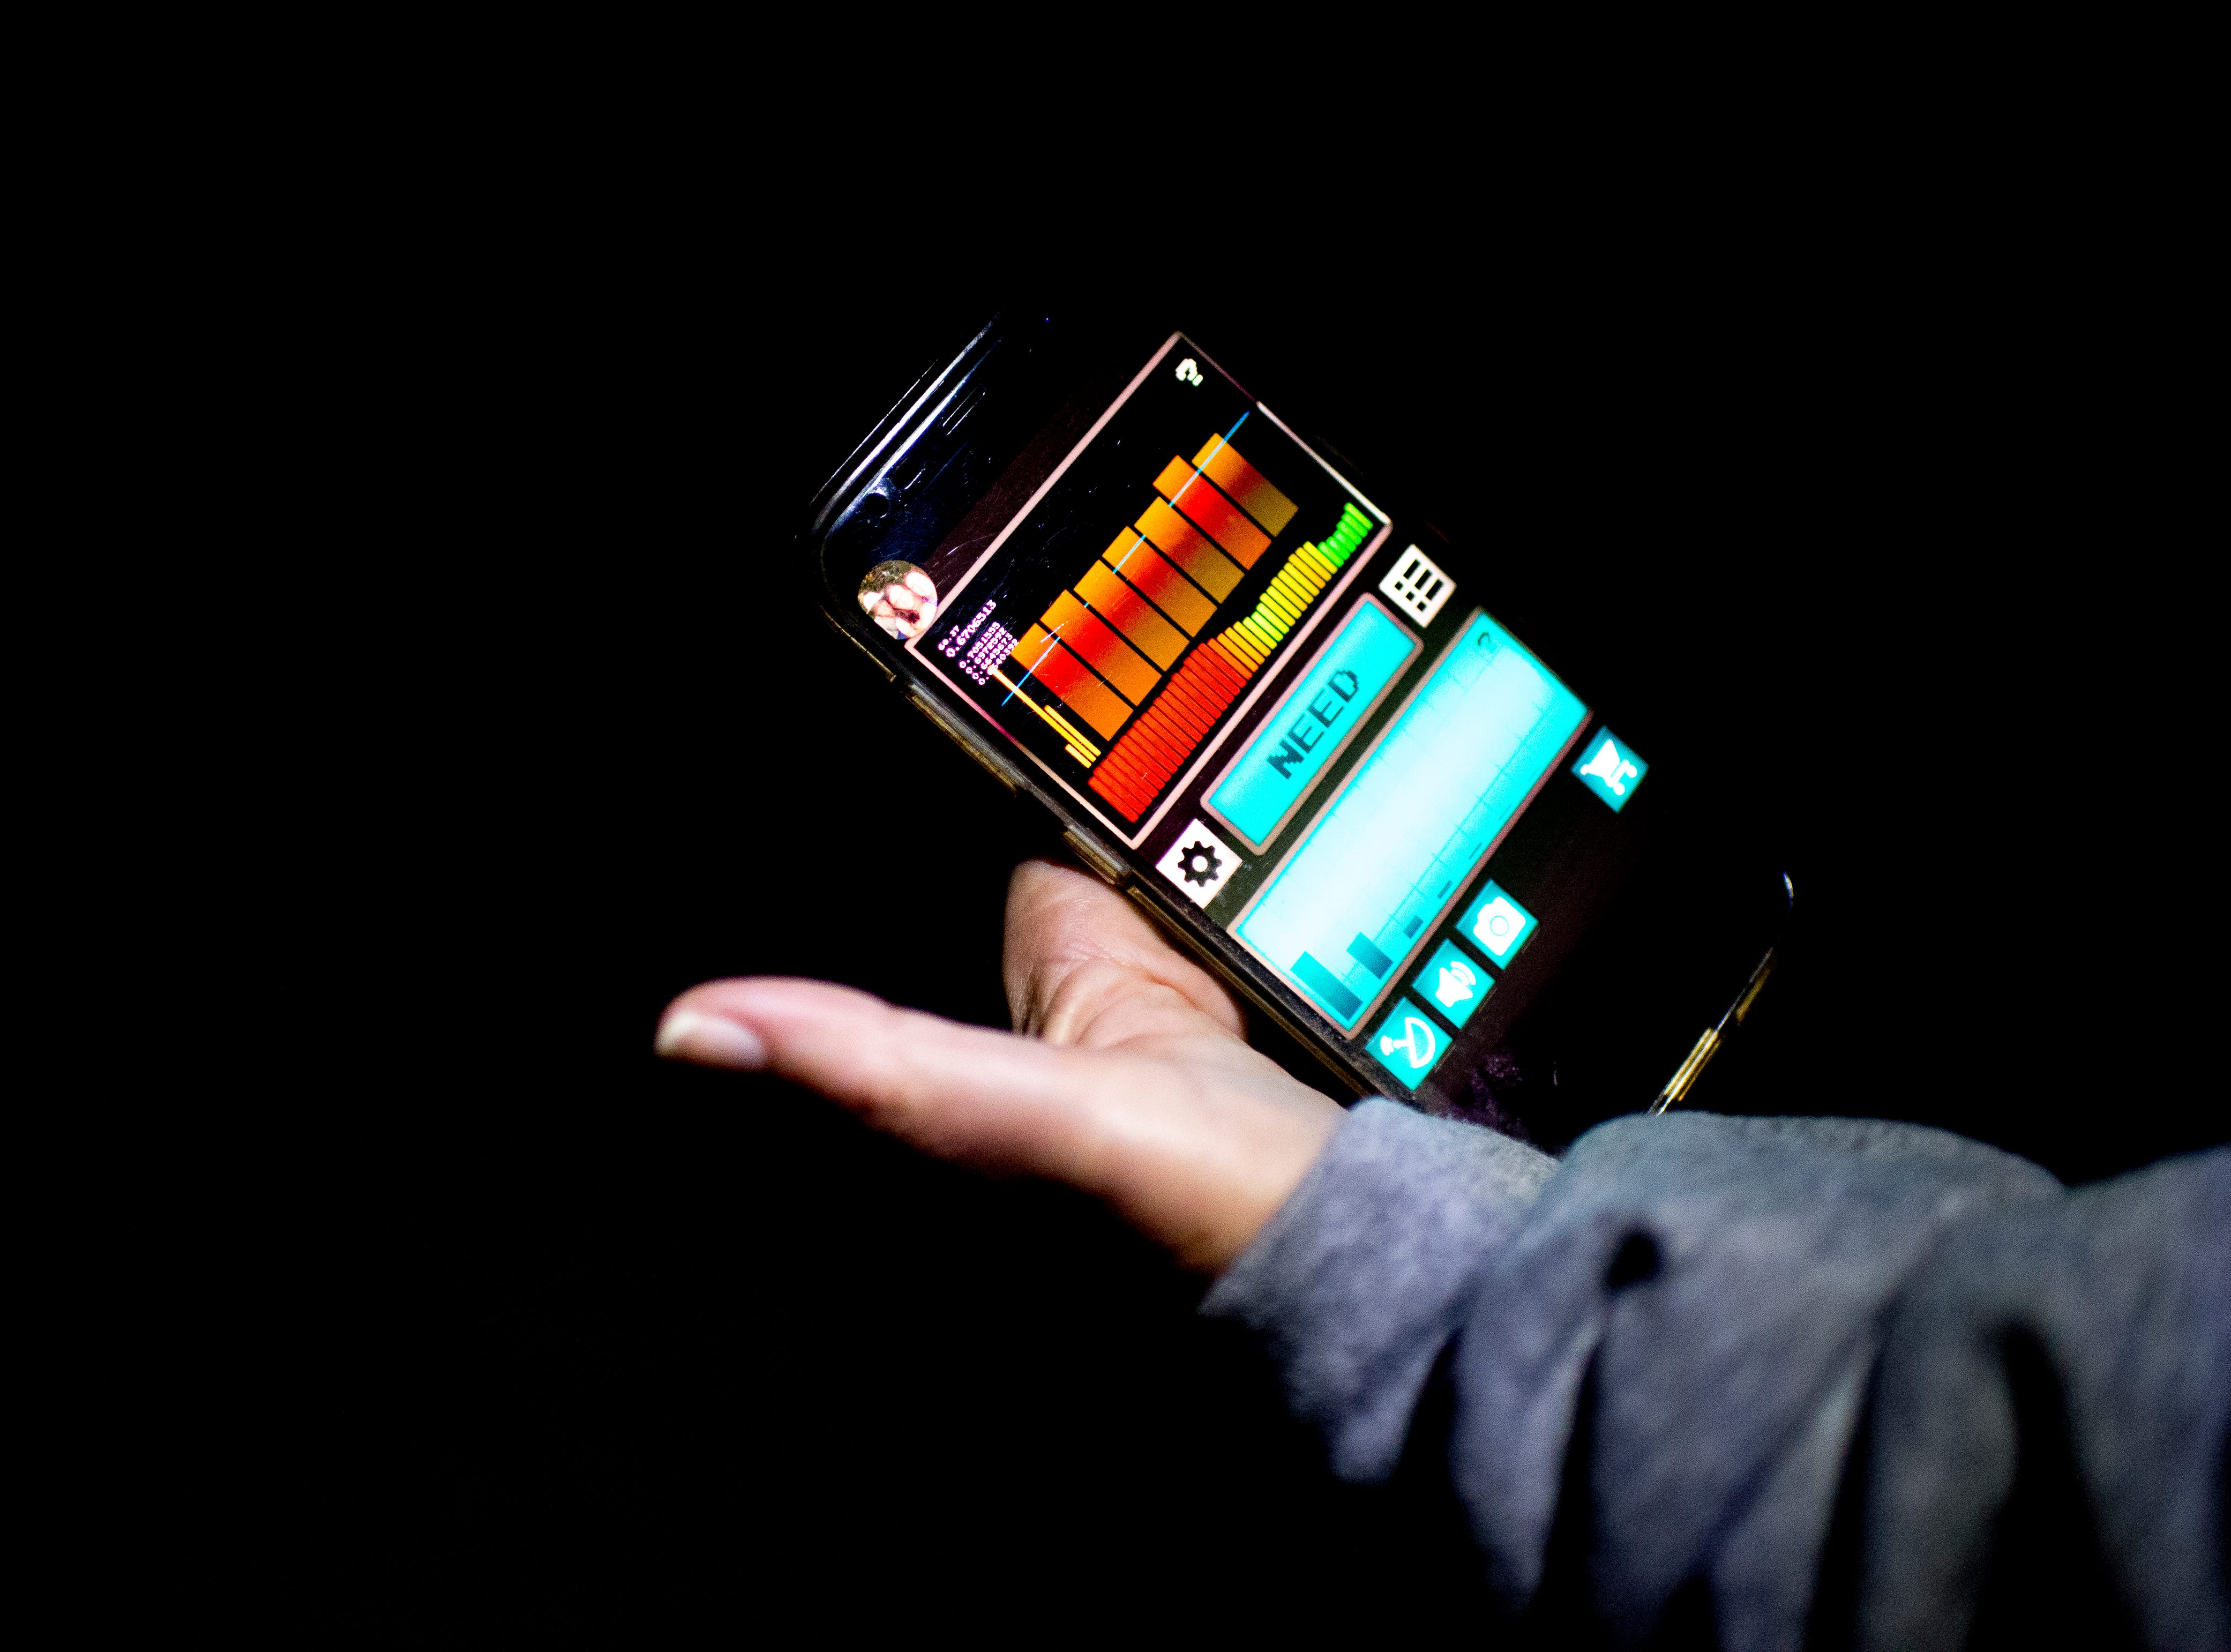 Tour guide Debbie Williams shows her ghost hunting app during a paranormal flashlight tour of Brushy Mountain State Penitentiary in Petros, Tennessee on Tuesday, October 16, 2018.